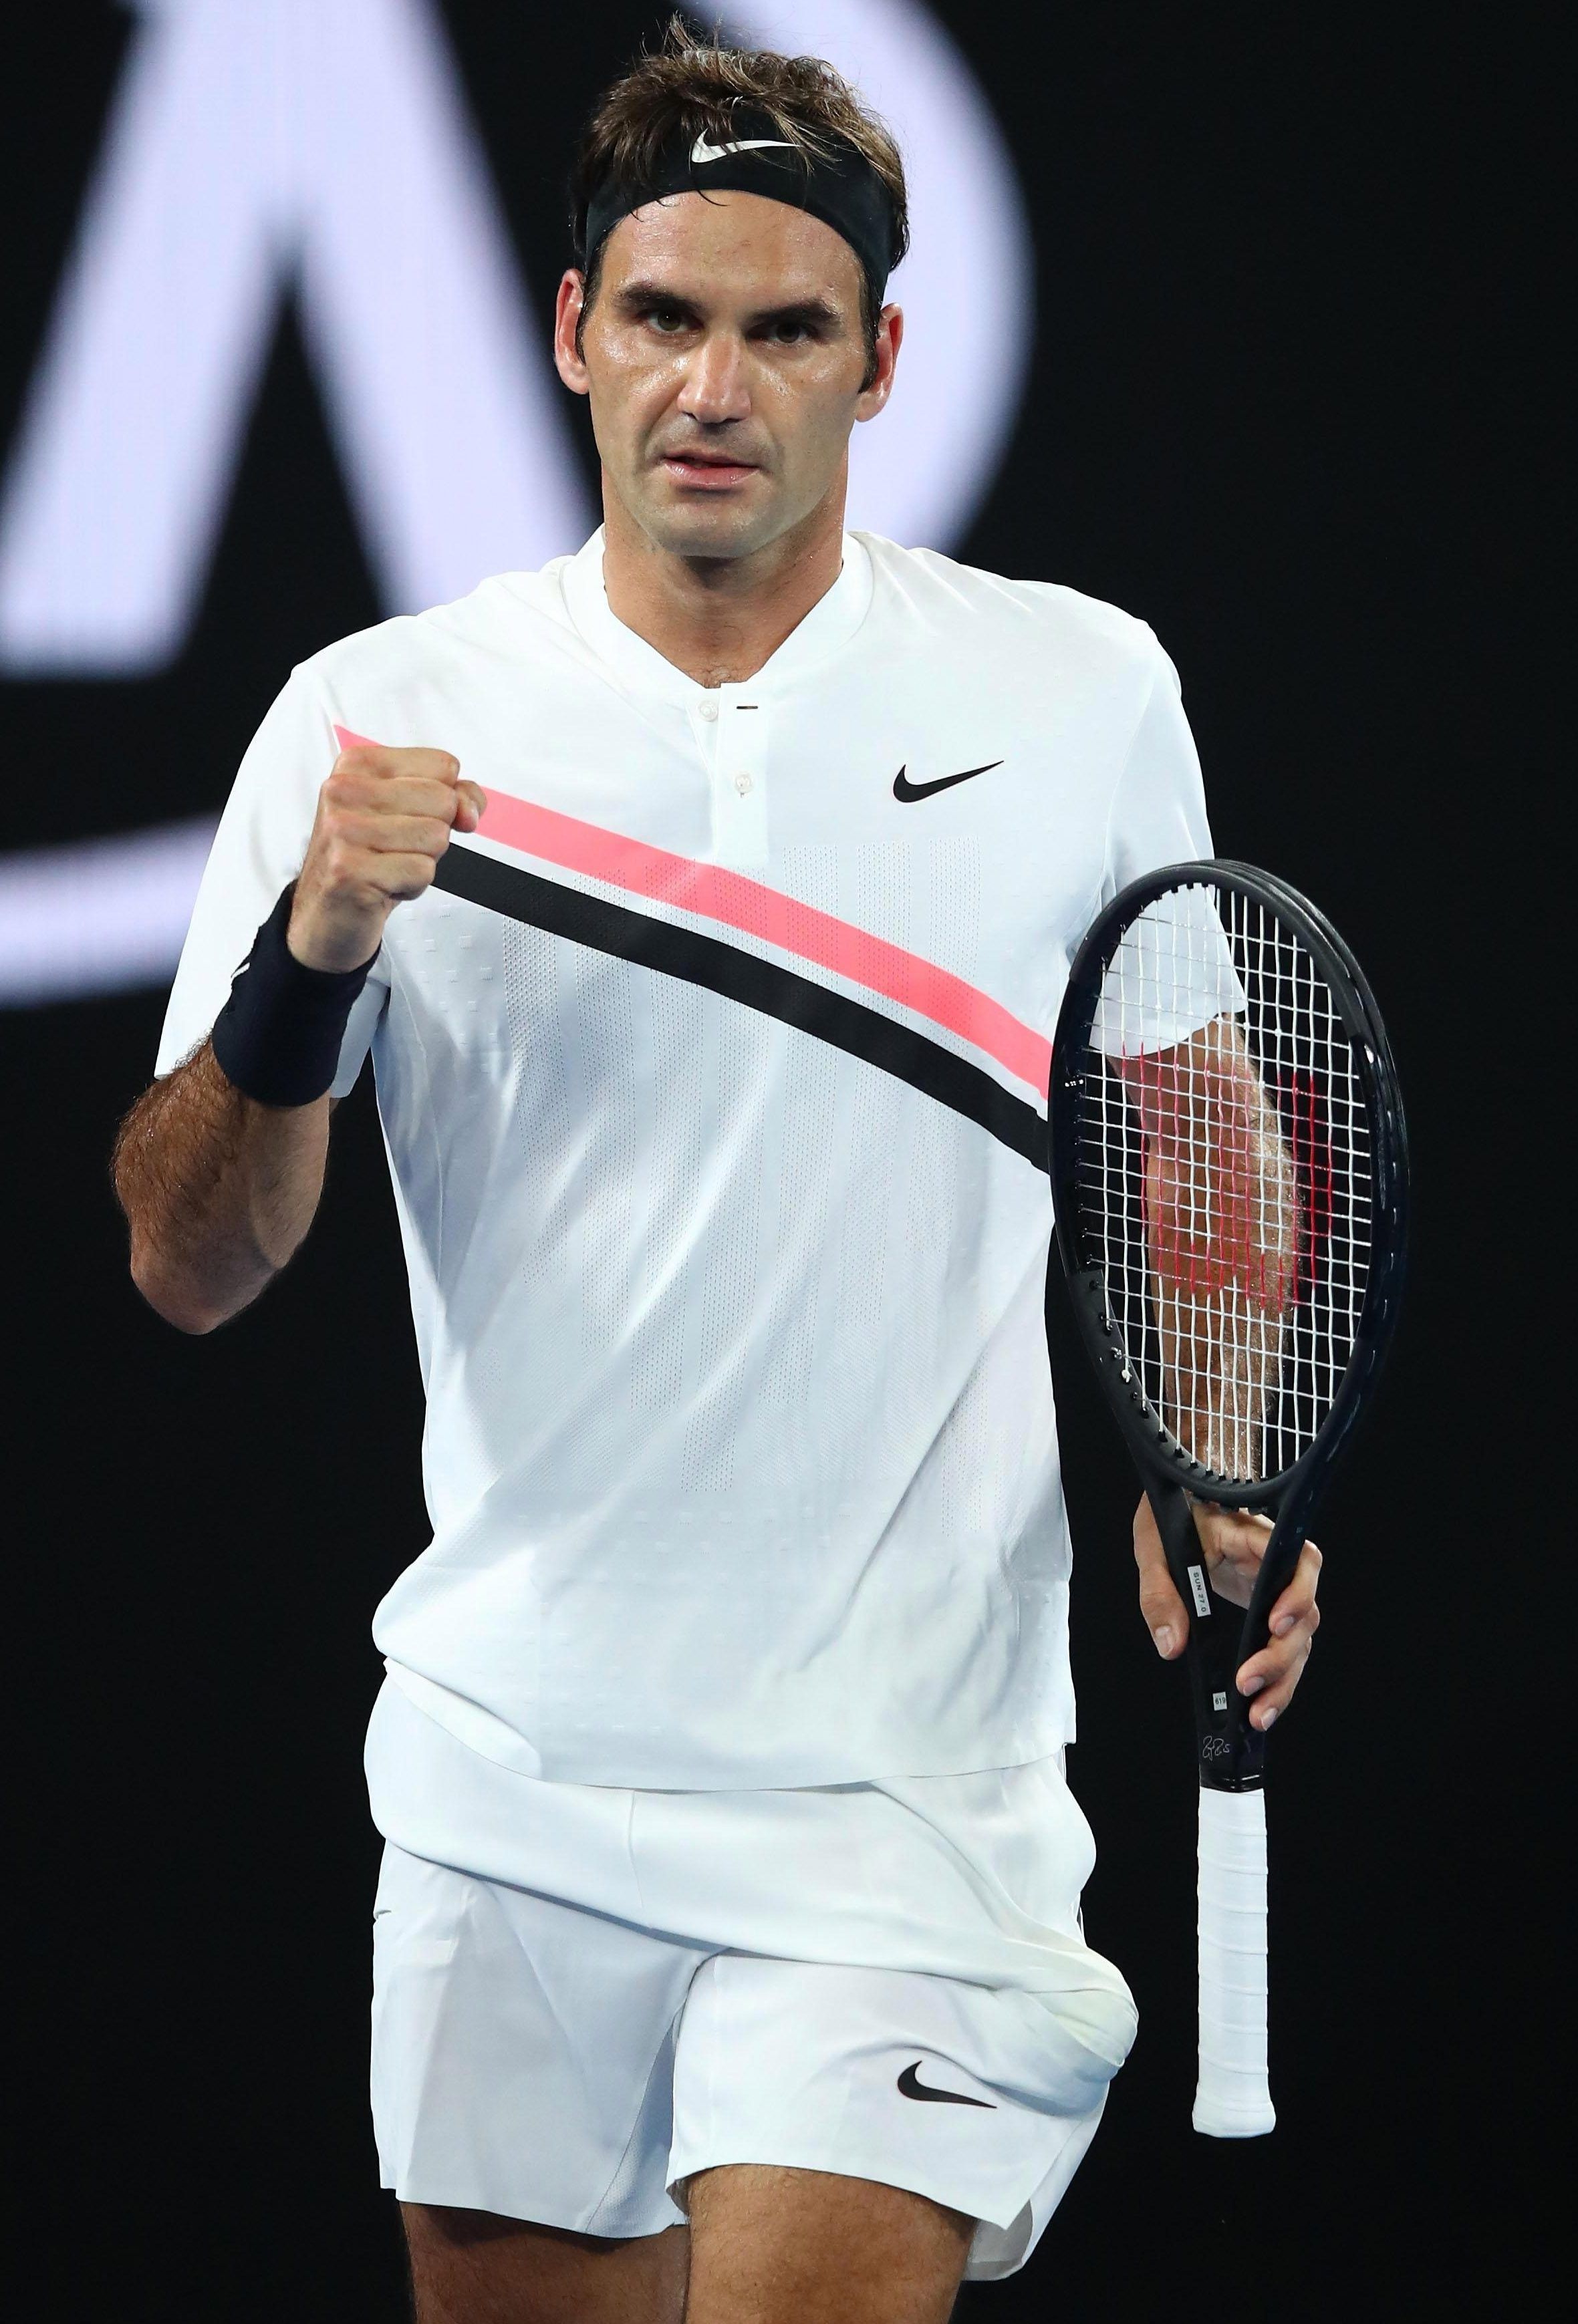 Roger Federer is proving age is just a number, and continues to play at the top of his game